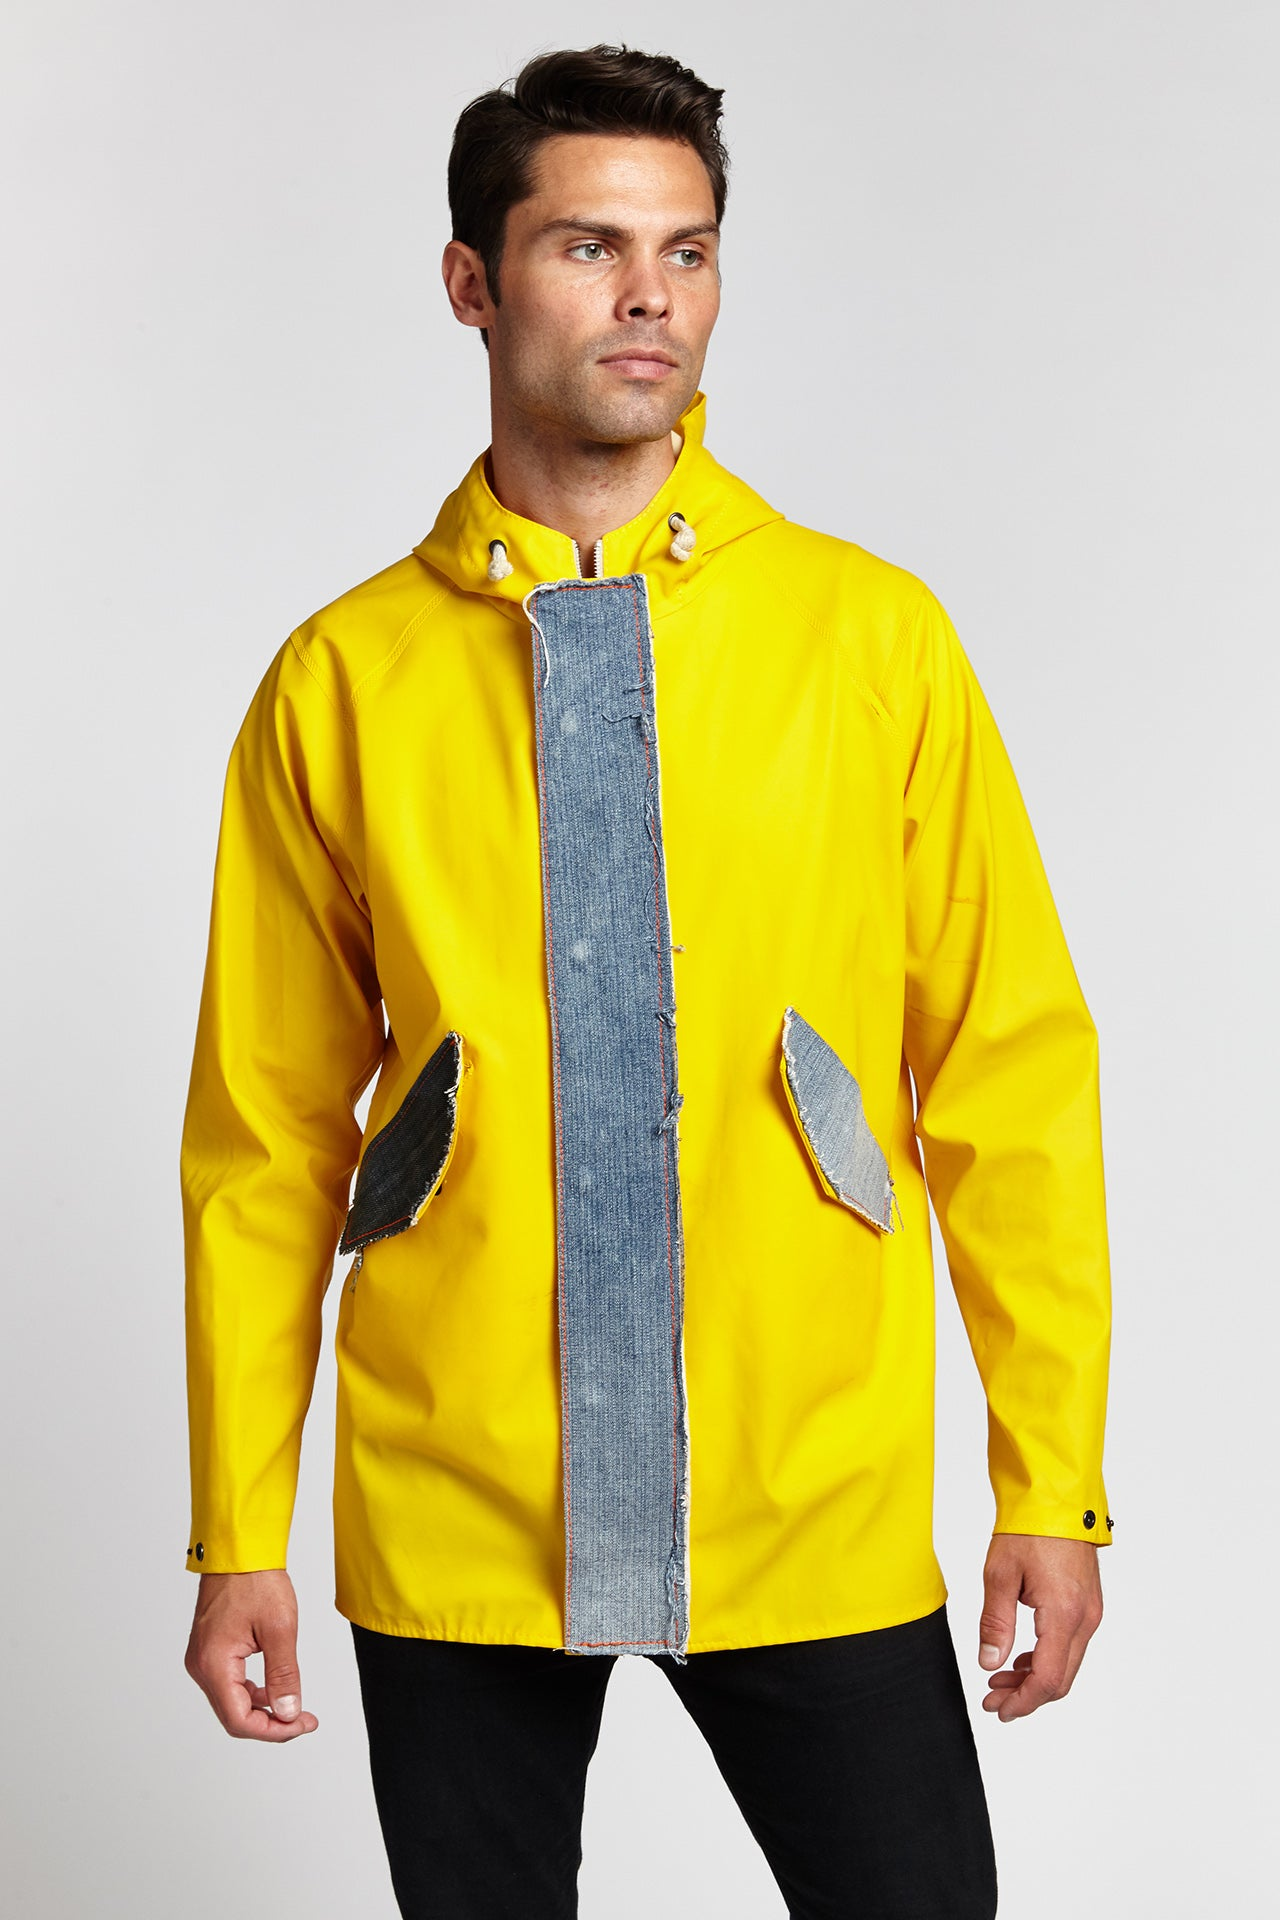 DENIM PATCH HYBRID YELLOW PVC RAINCOAT-JACKETS-Mundane Official-L-YELLOW-Mundane Official